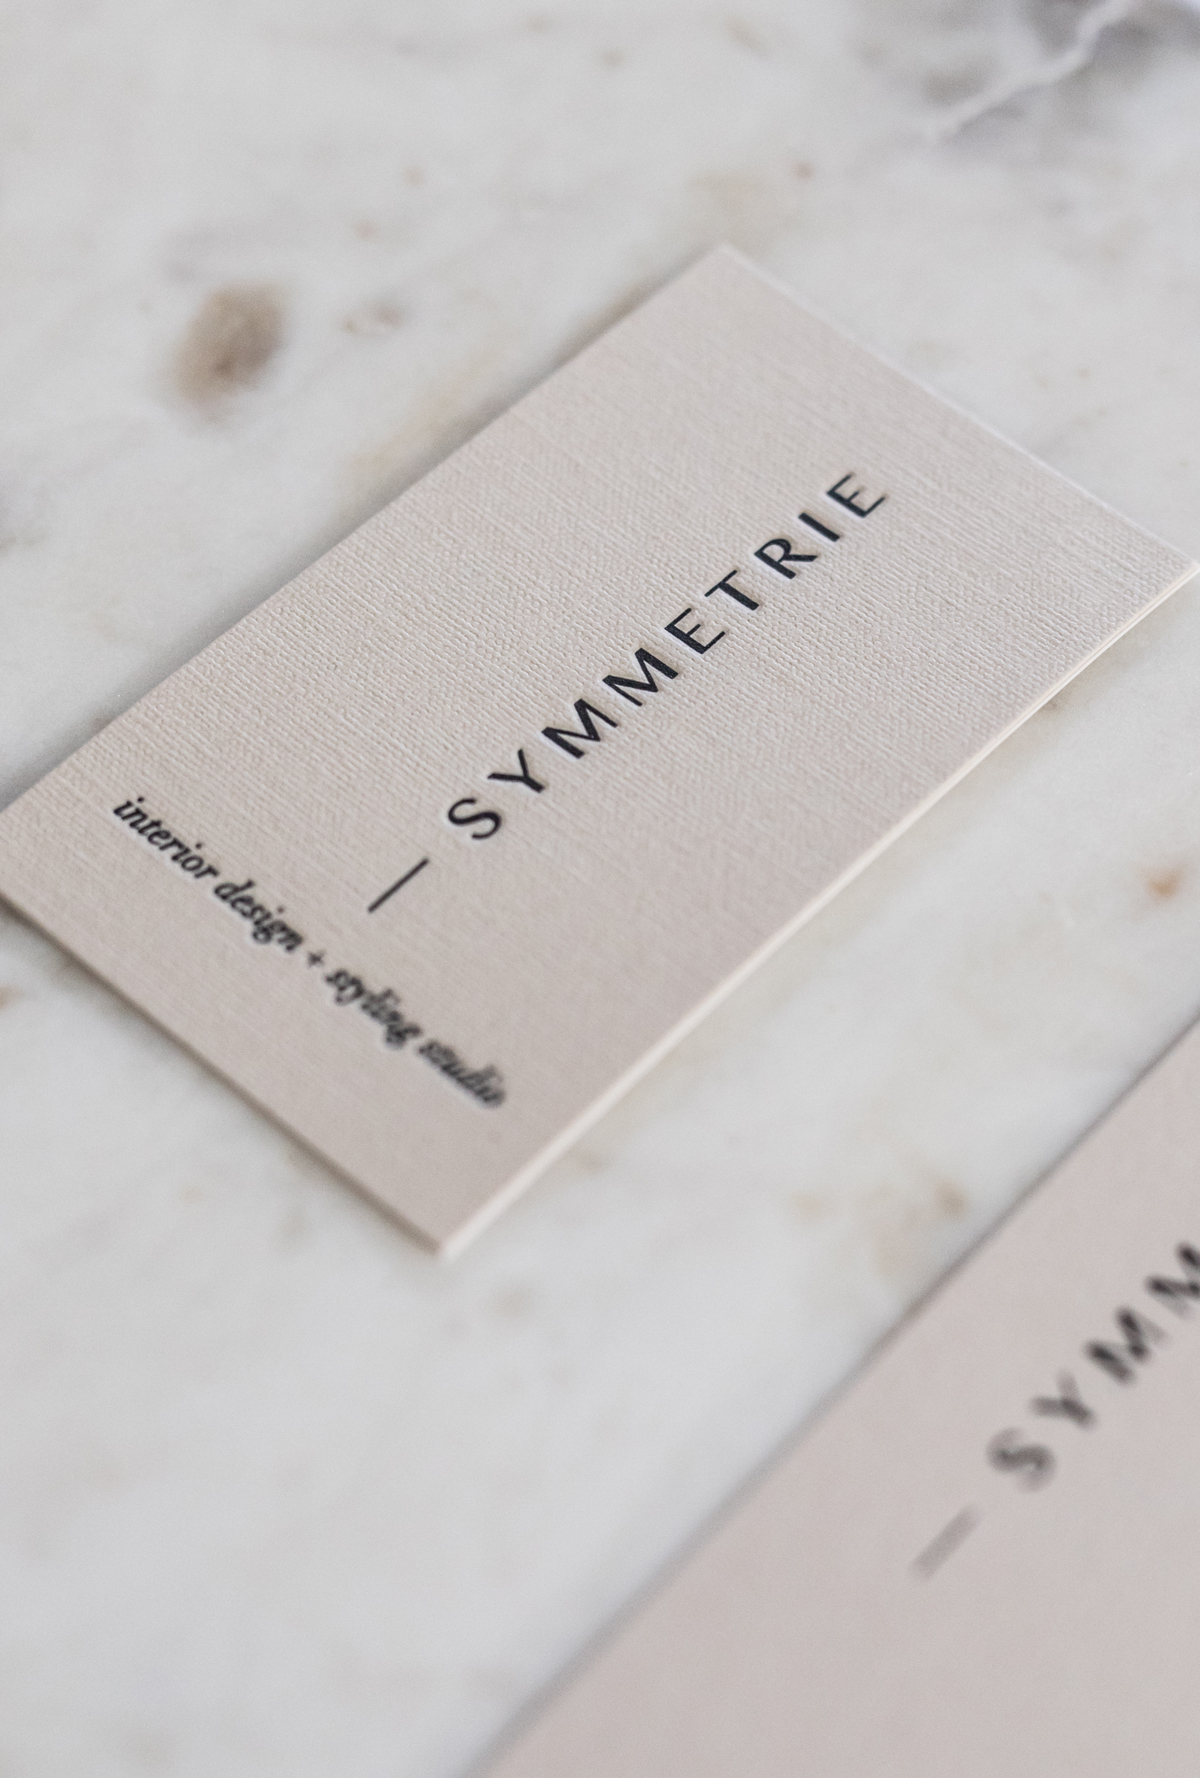 Symmetrie - ~Brand Identity ~logo, business cards, thank you cards